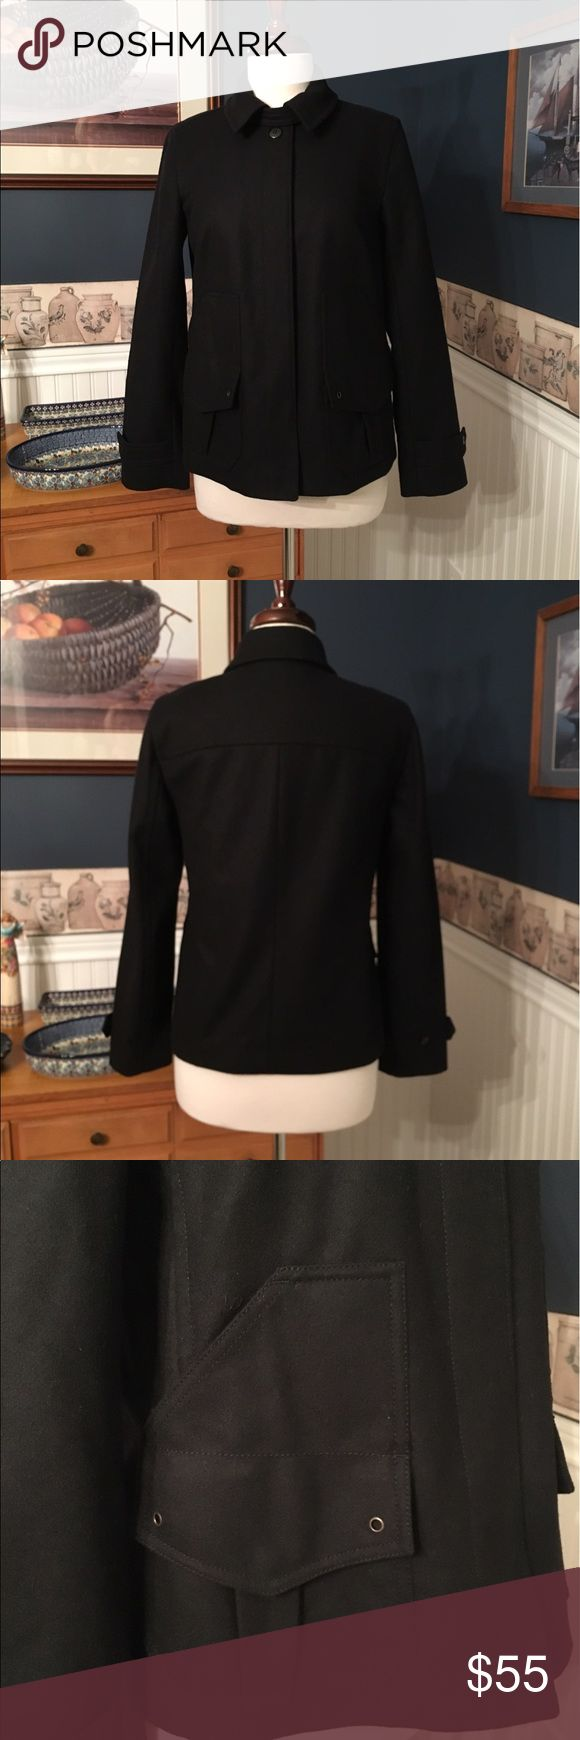 J Crew Coat Size XS Super cute classic J. Crew black coat in excellent condition., like new. The care tag was removed from the coat , but I believe it is a wool blend , but not itchy .  It is fully lined. Size XS . It is 24 inches long and 18 inches armpit to armpit. The sleeves are 18 inches long from the armpit  down . J. Crew Jackets & Coats